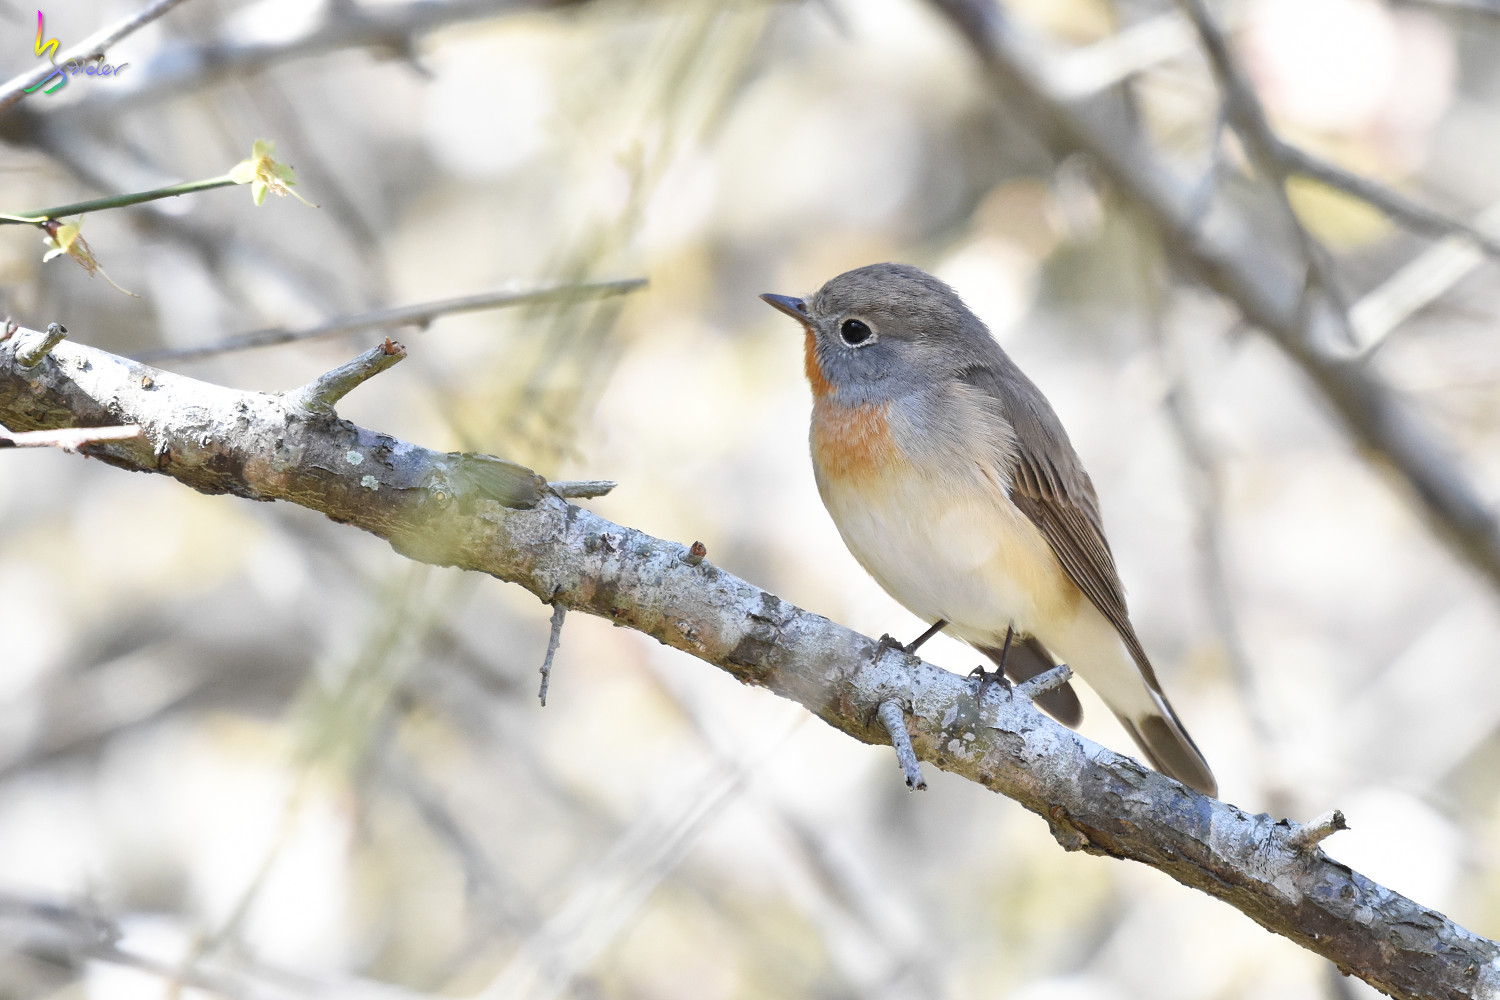 Red-breasted_Flycatcher_6375